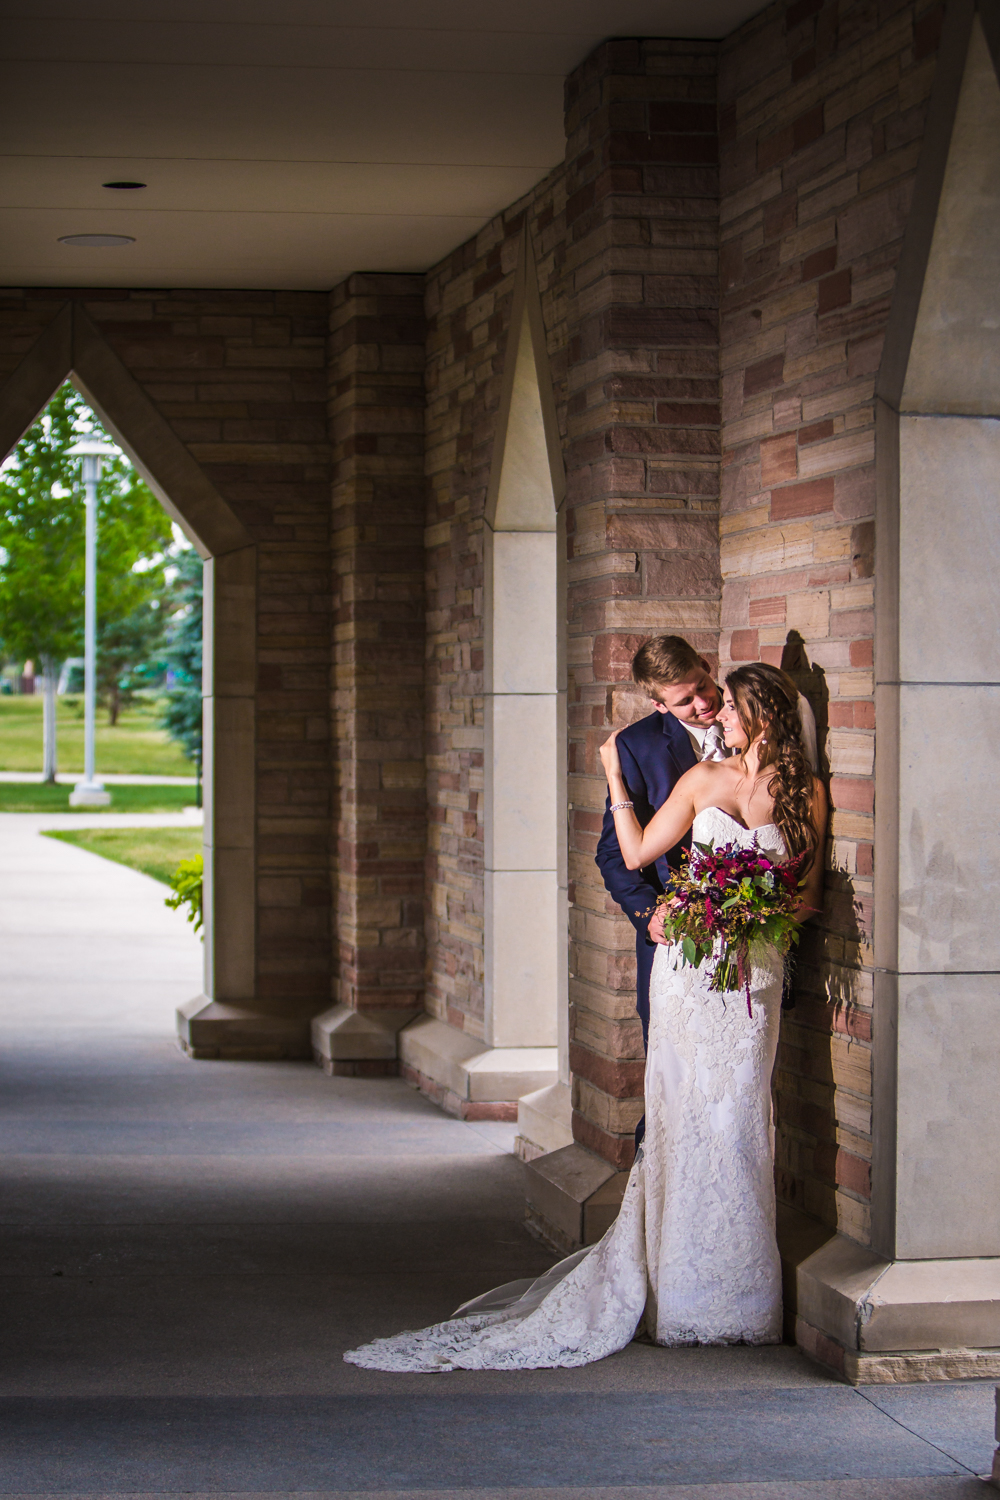 Bride and groom outside Cherry Hills Community Church.   hotographed by JMGant Photography, Denver Colorado wedding photographer.